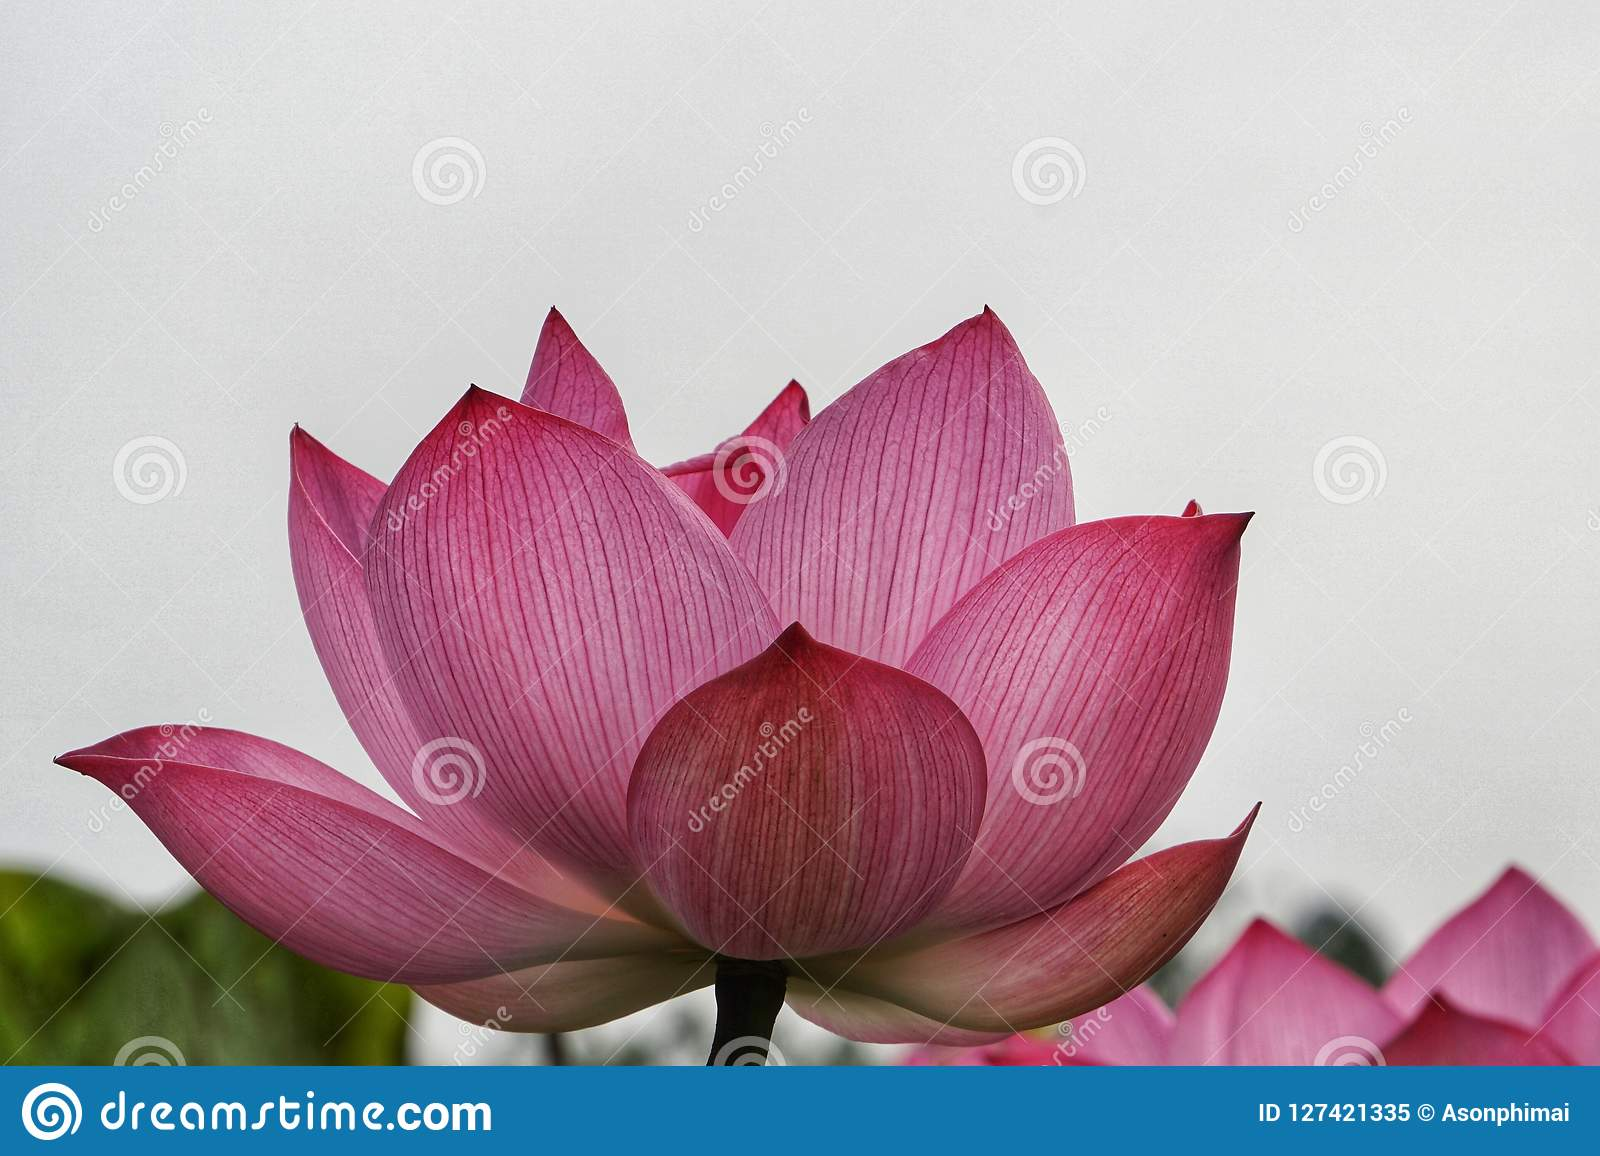 Lotus Or Lily Nelumbo Nucifera Also Known As Indian Lotus Sacred